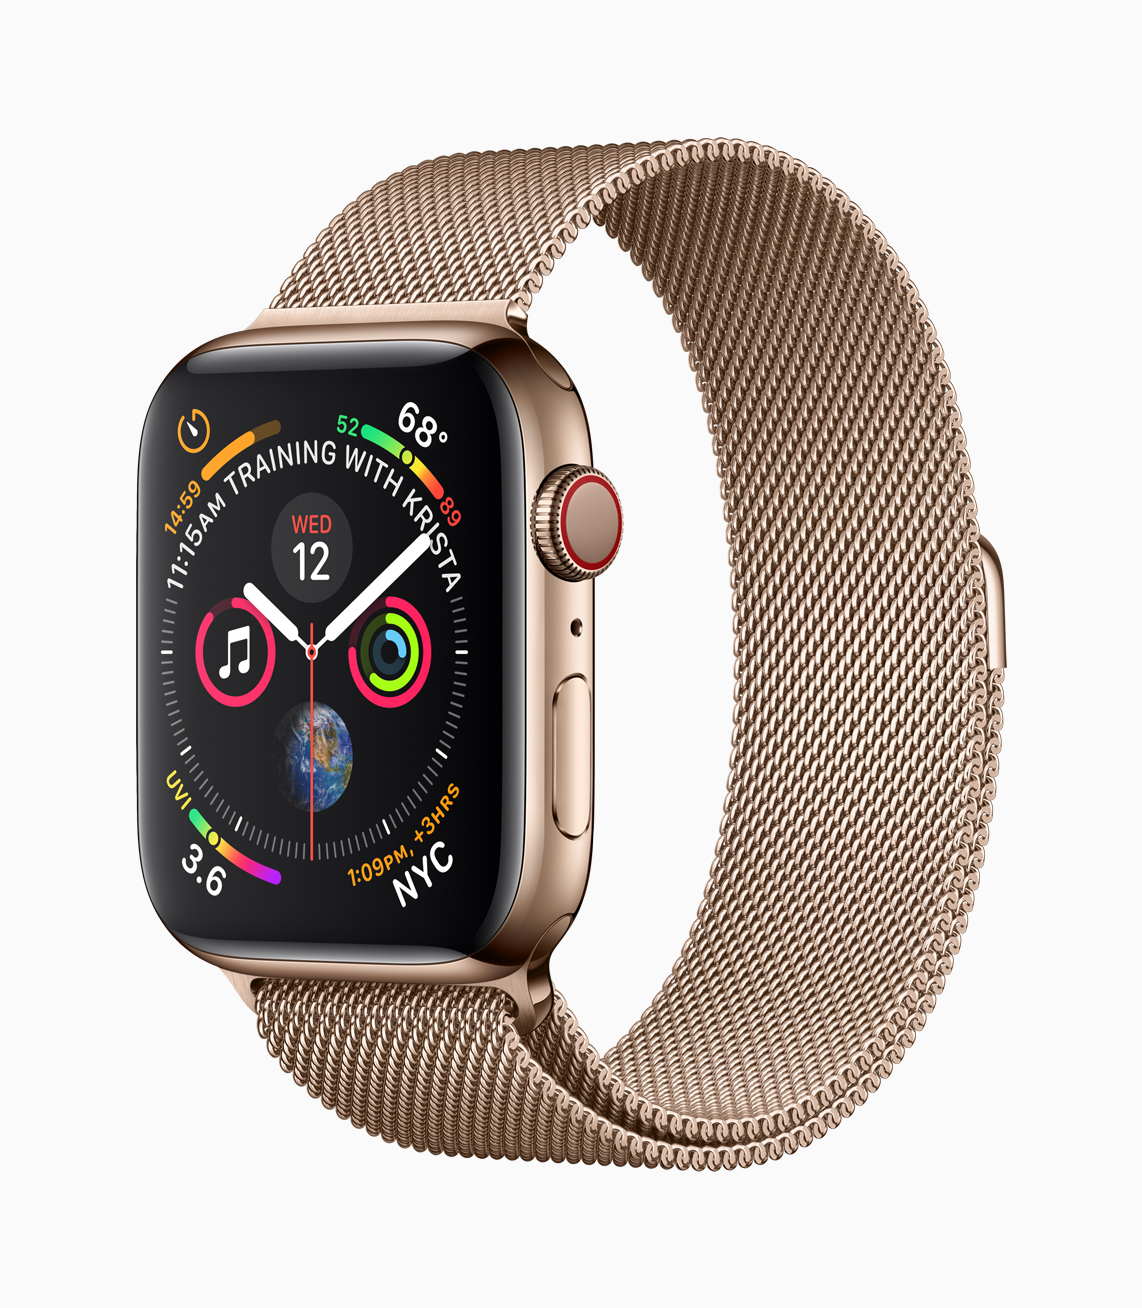 Apple Watch Series 4 - Ouro